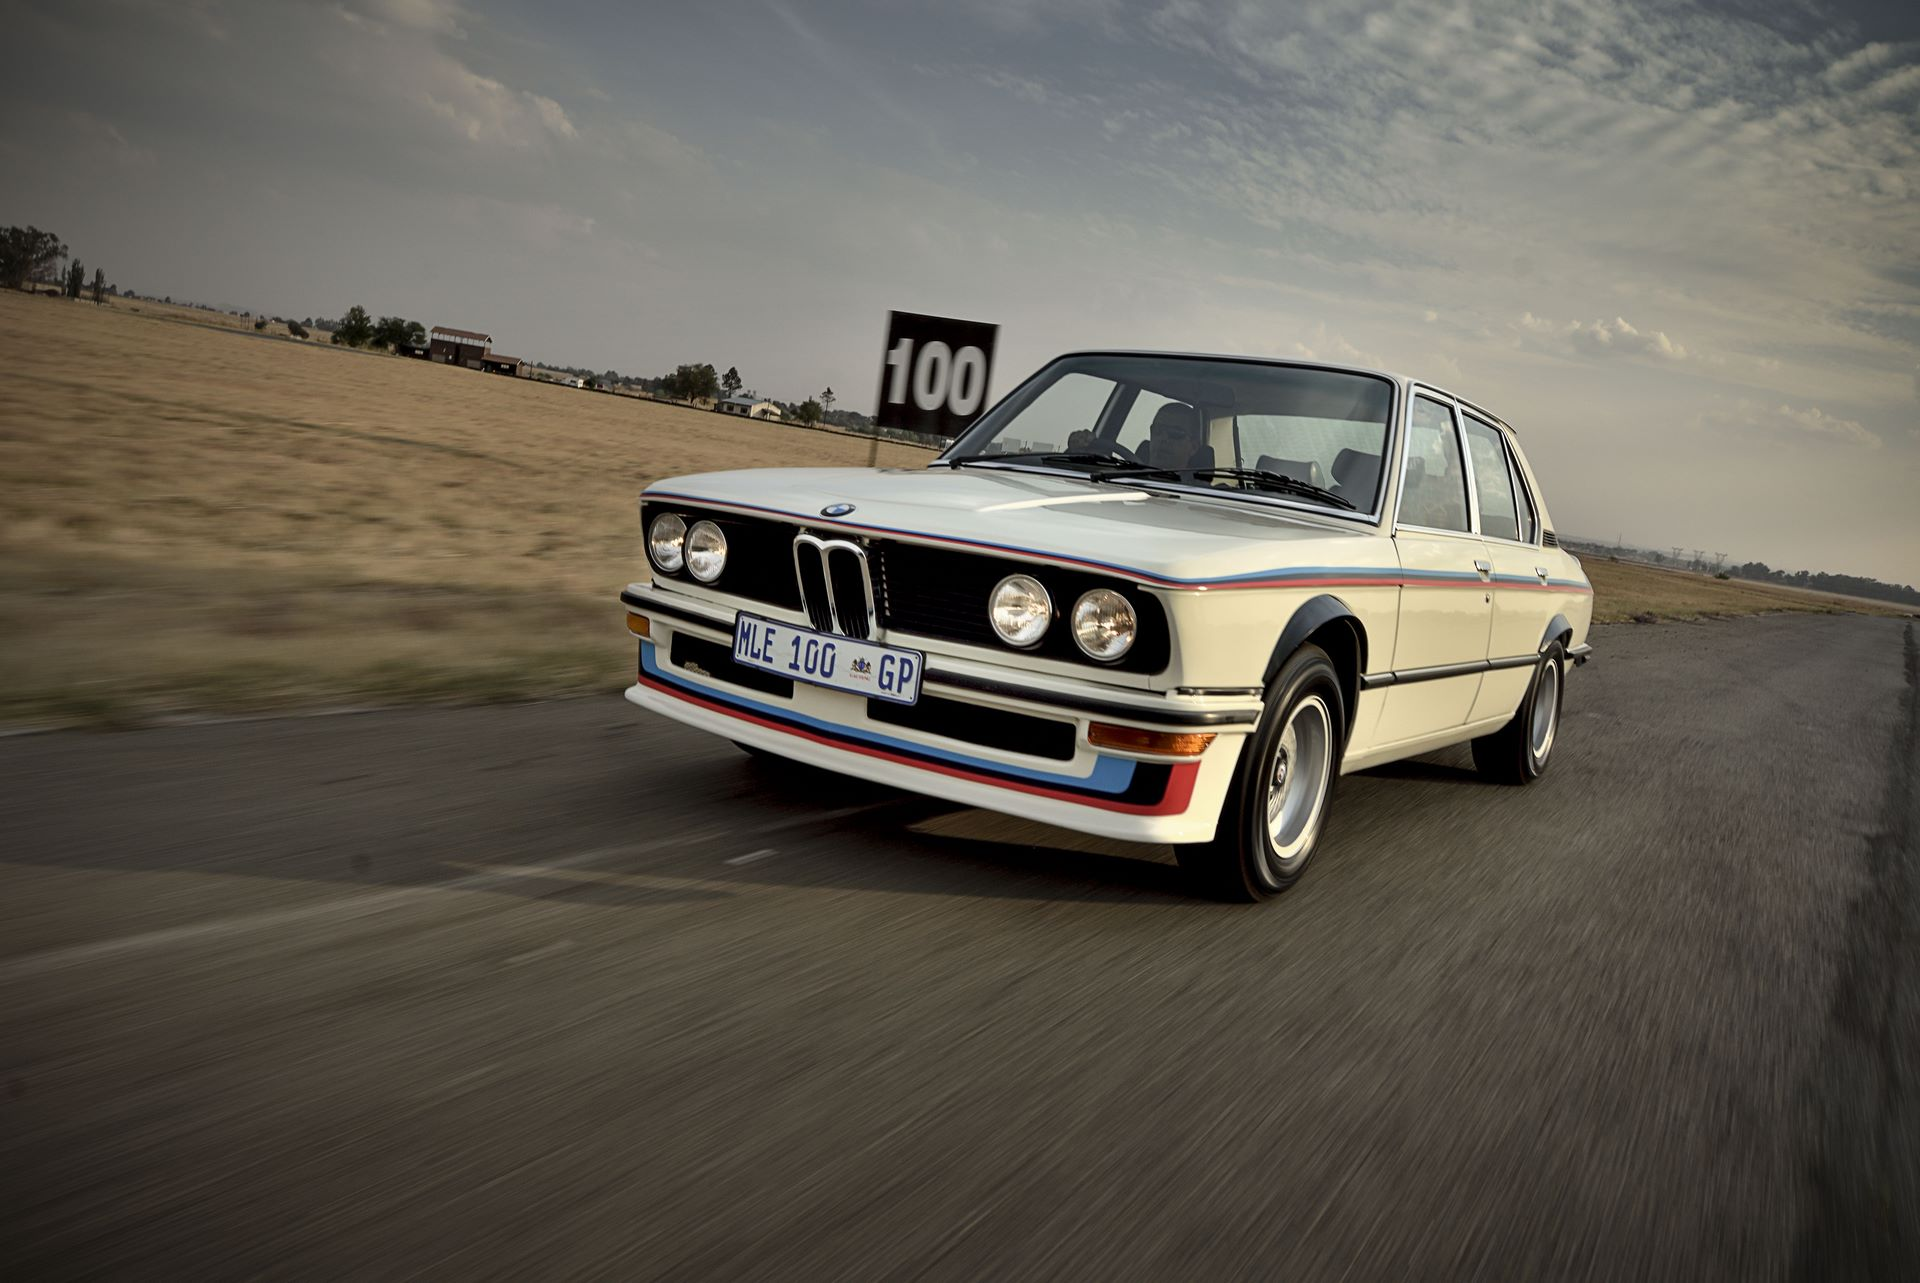 BMW-530-MLE-restoration-in-South-Africa-30